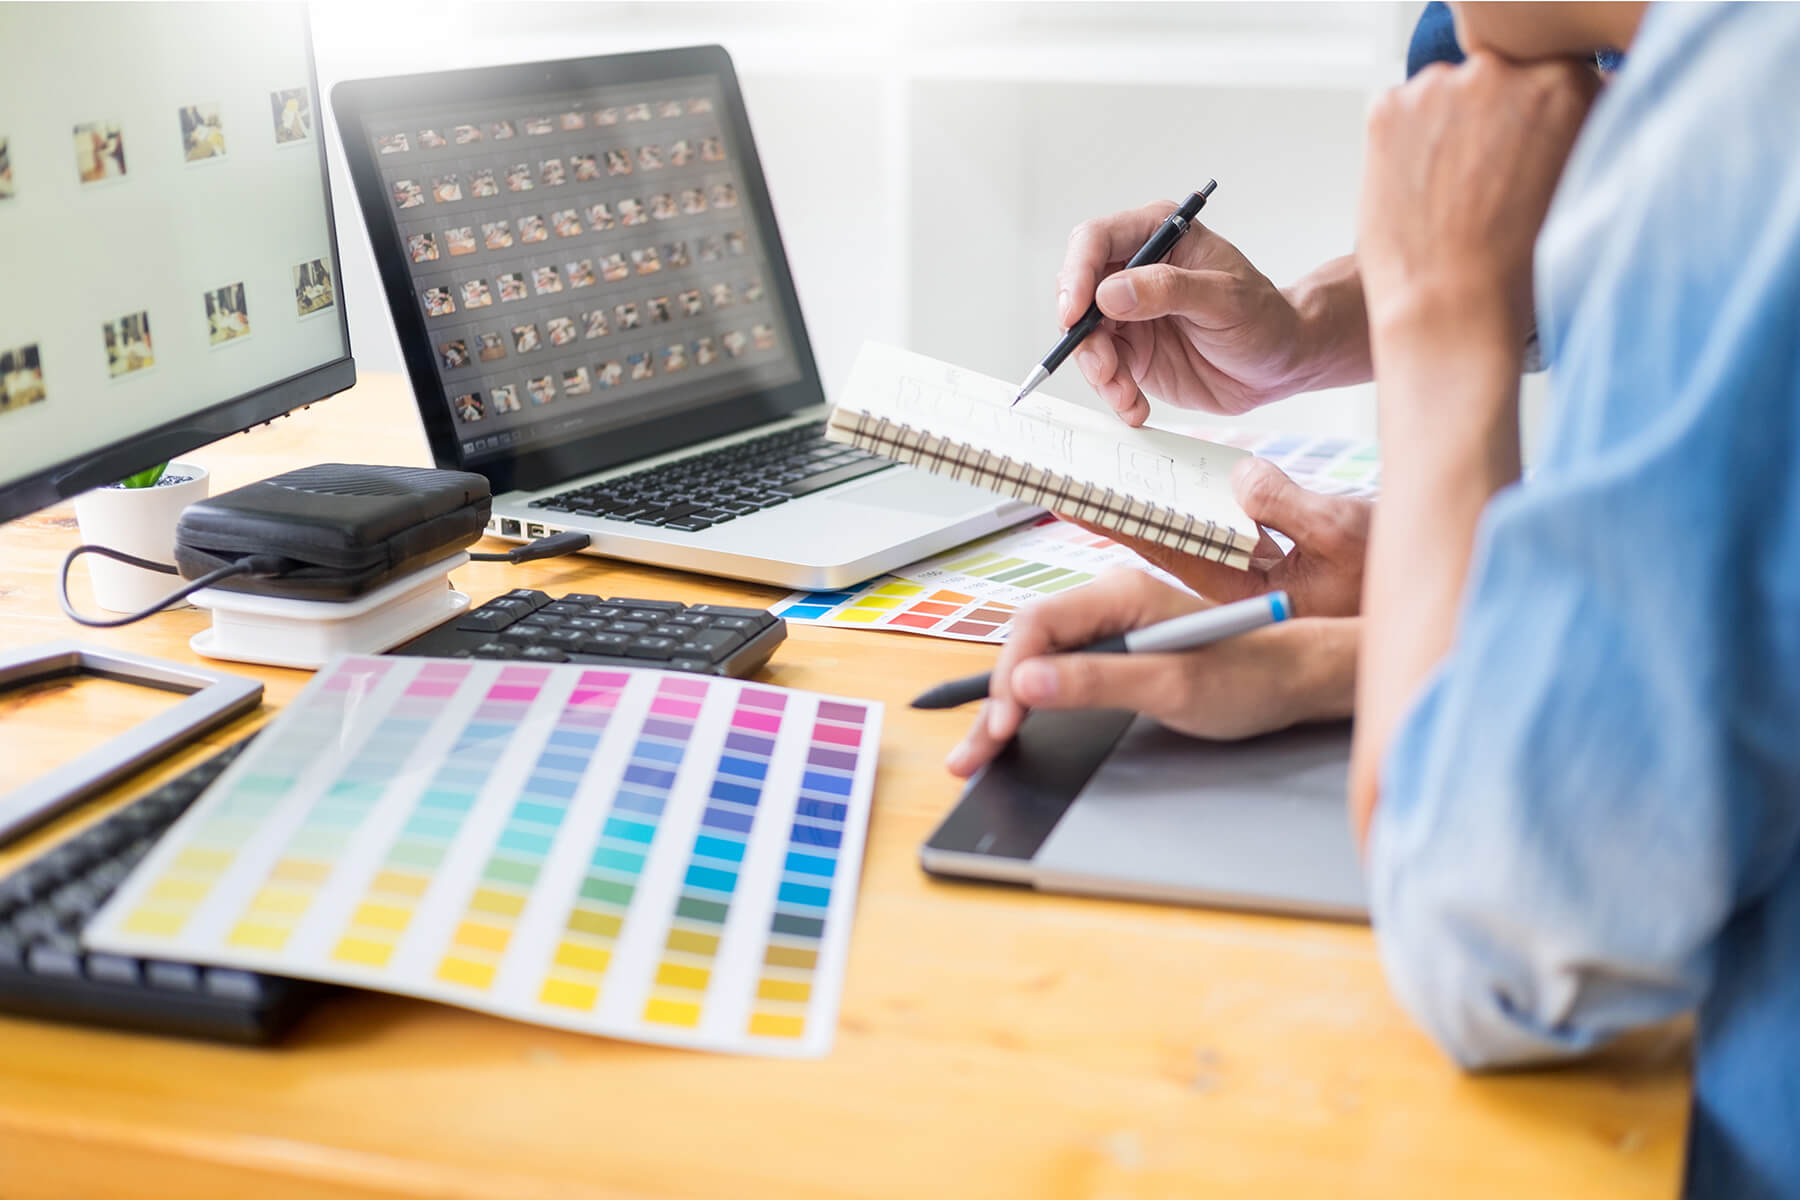 Brand & logo design Exeter - Get started with One Bright Spark Square